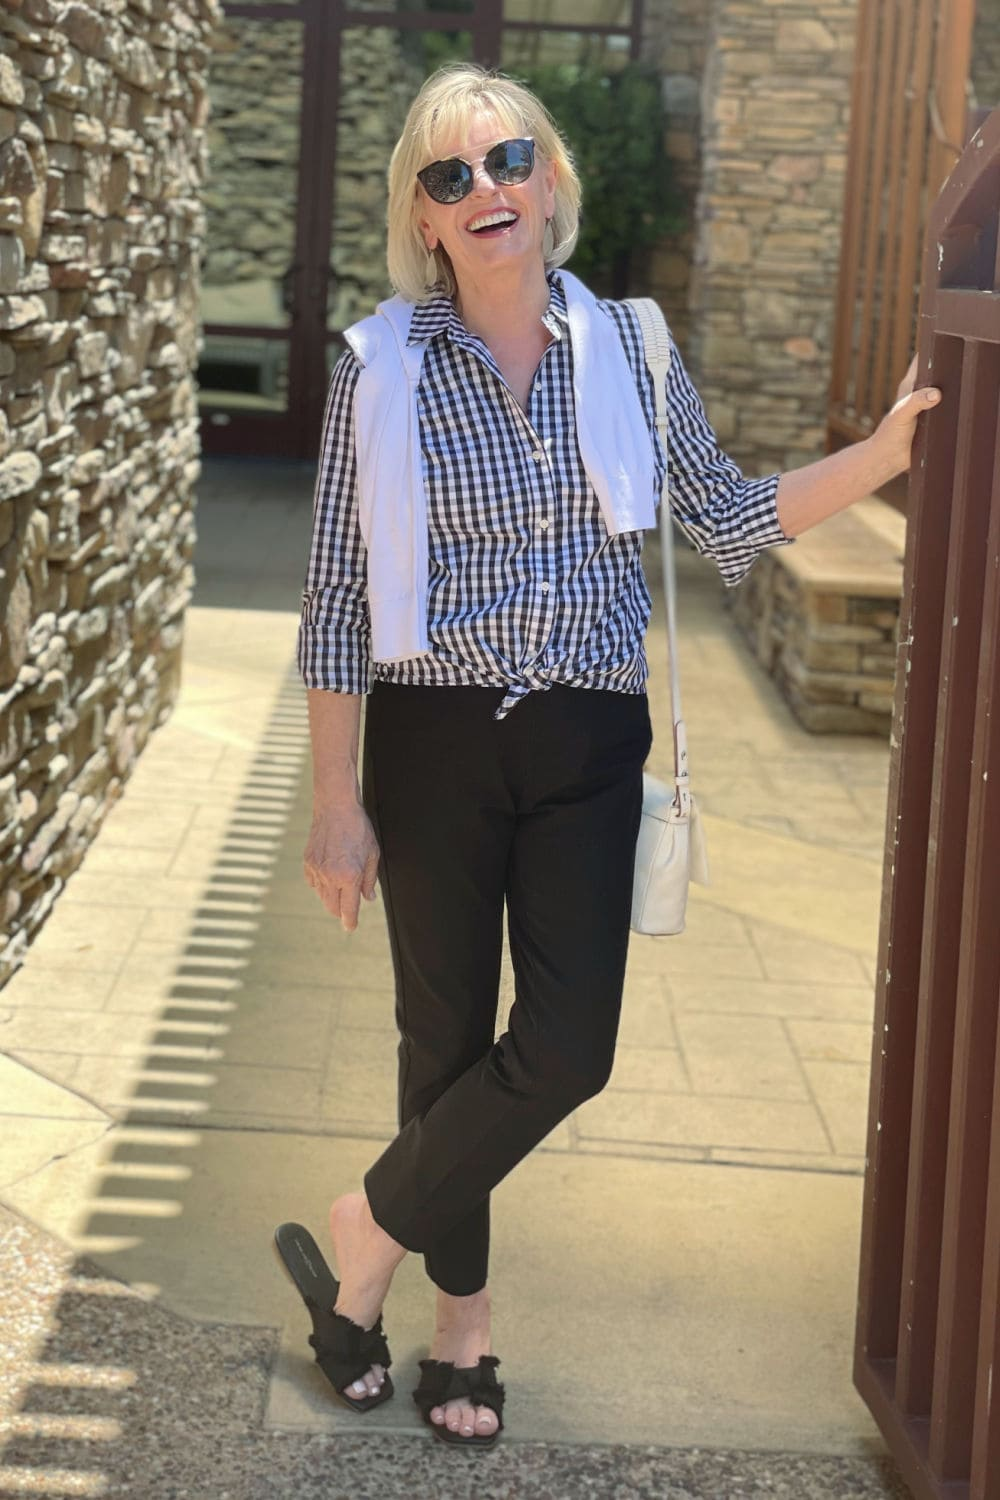 woman smiling into camera with gingham shirt and black pants